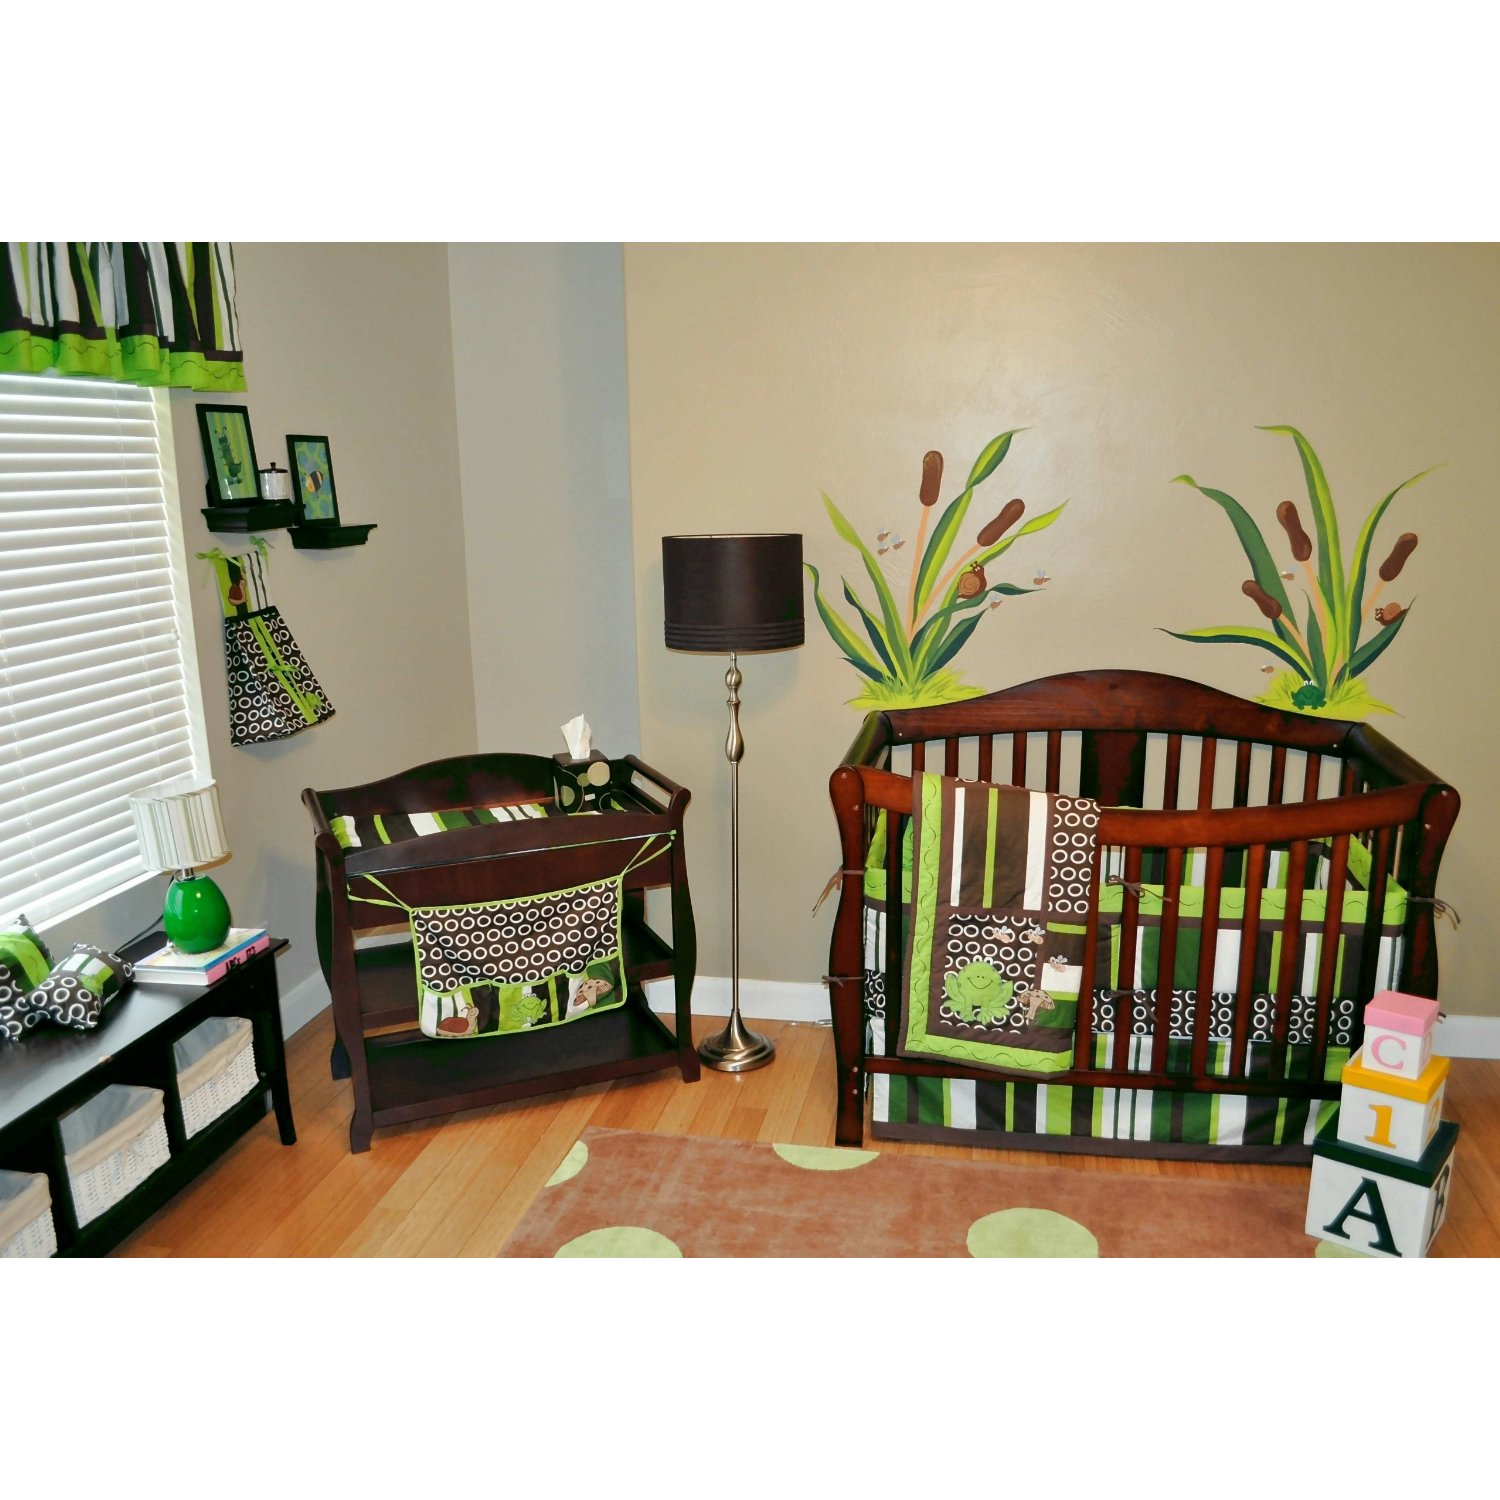 Nursery Room Ideas: Animal Nursery Theme Series 1